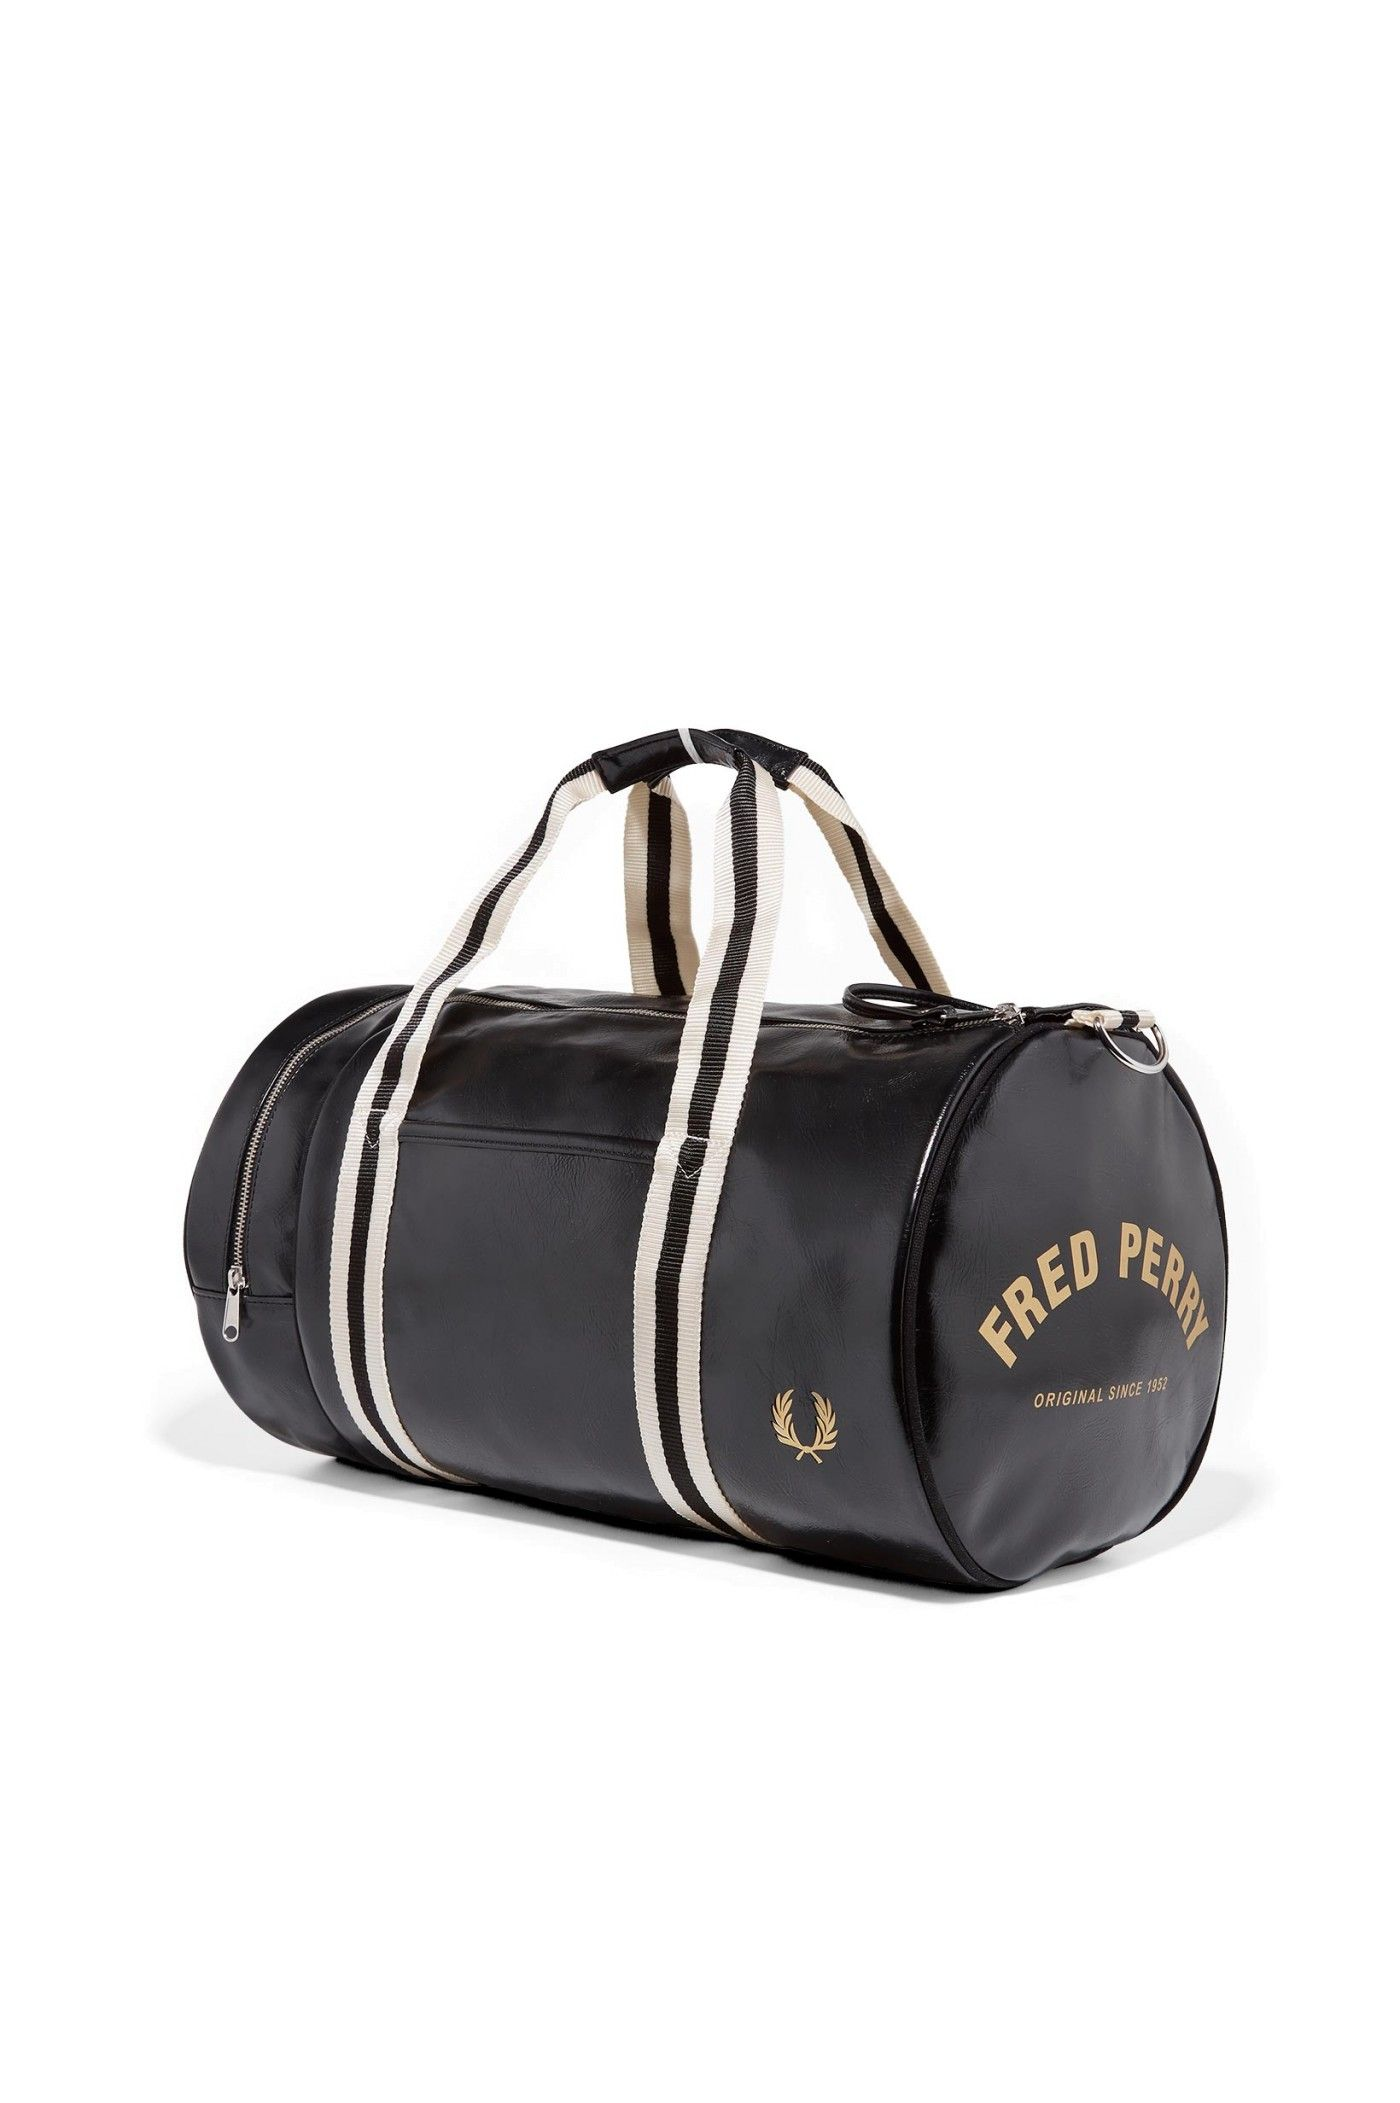 5b9c20795a43 Fred Perry - Classic Barrel Bag Black   Gold